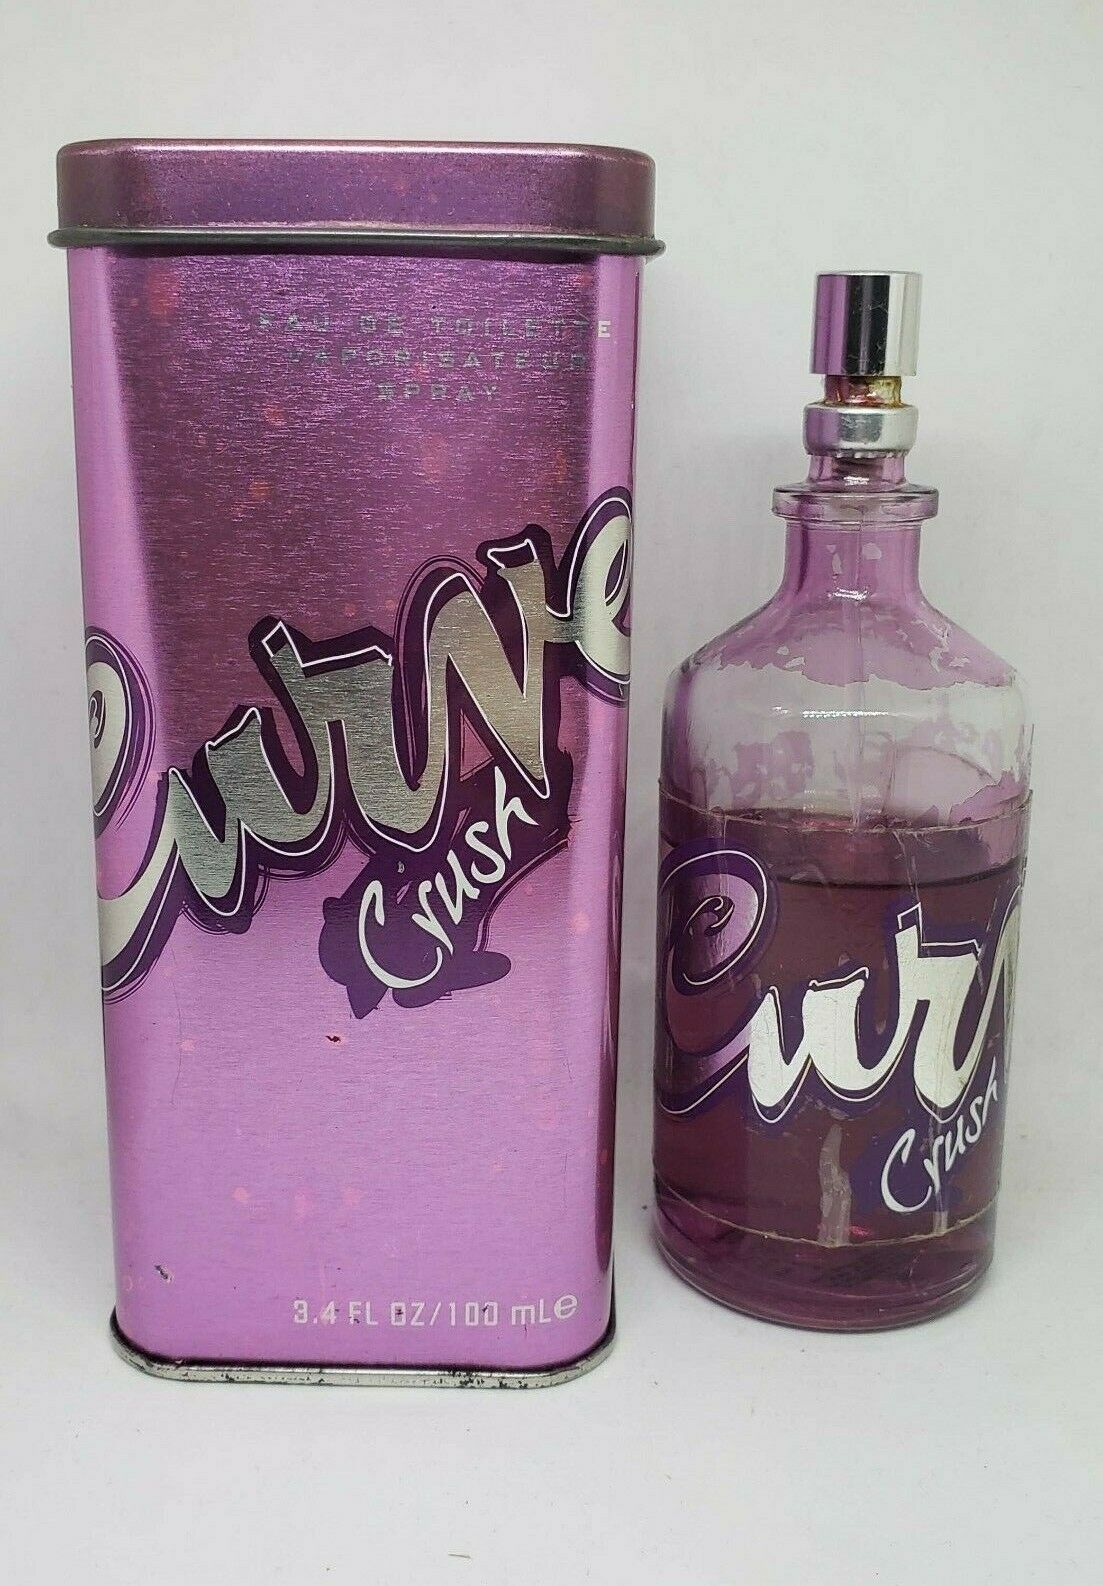 Primary image for Curve Crush By Liz Claiborne 3.4oz EDT Spray for Women